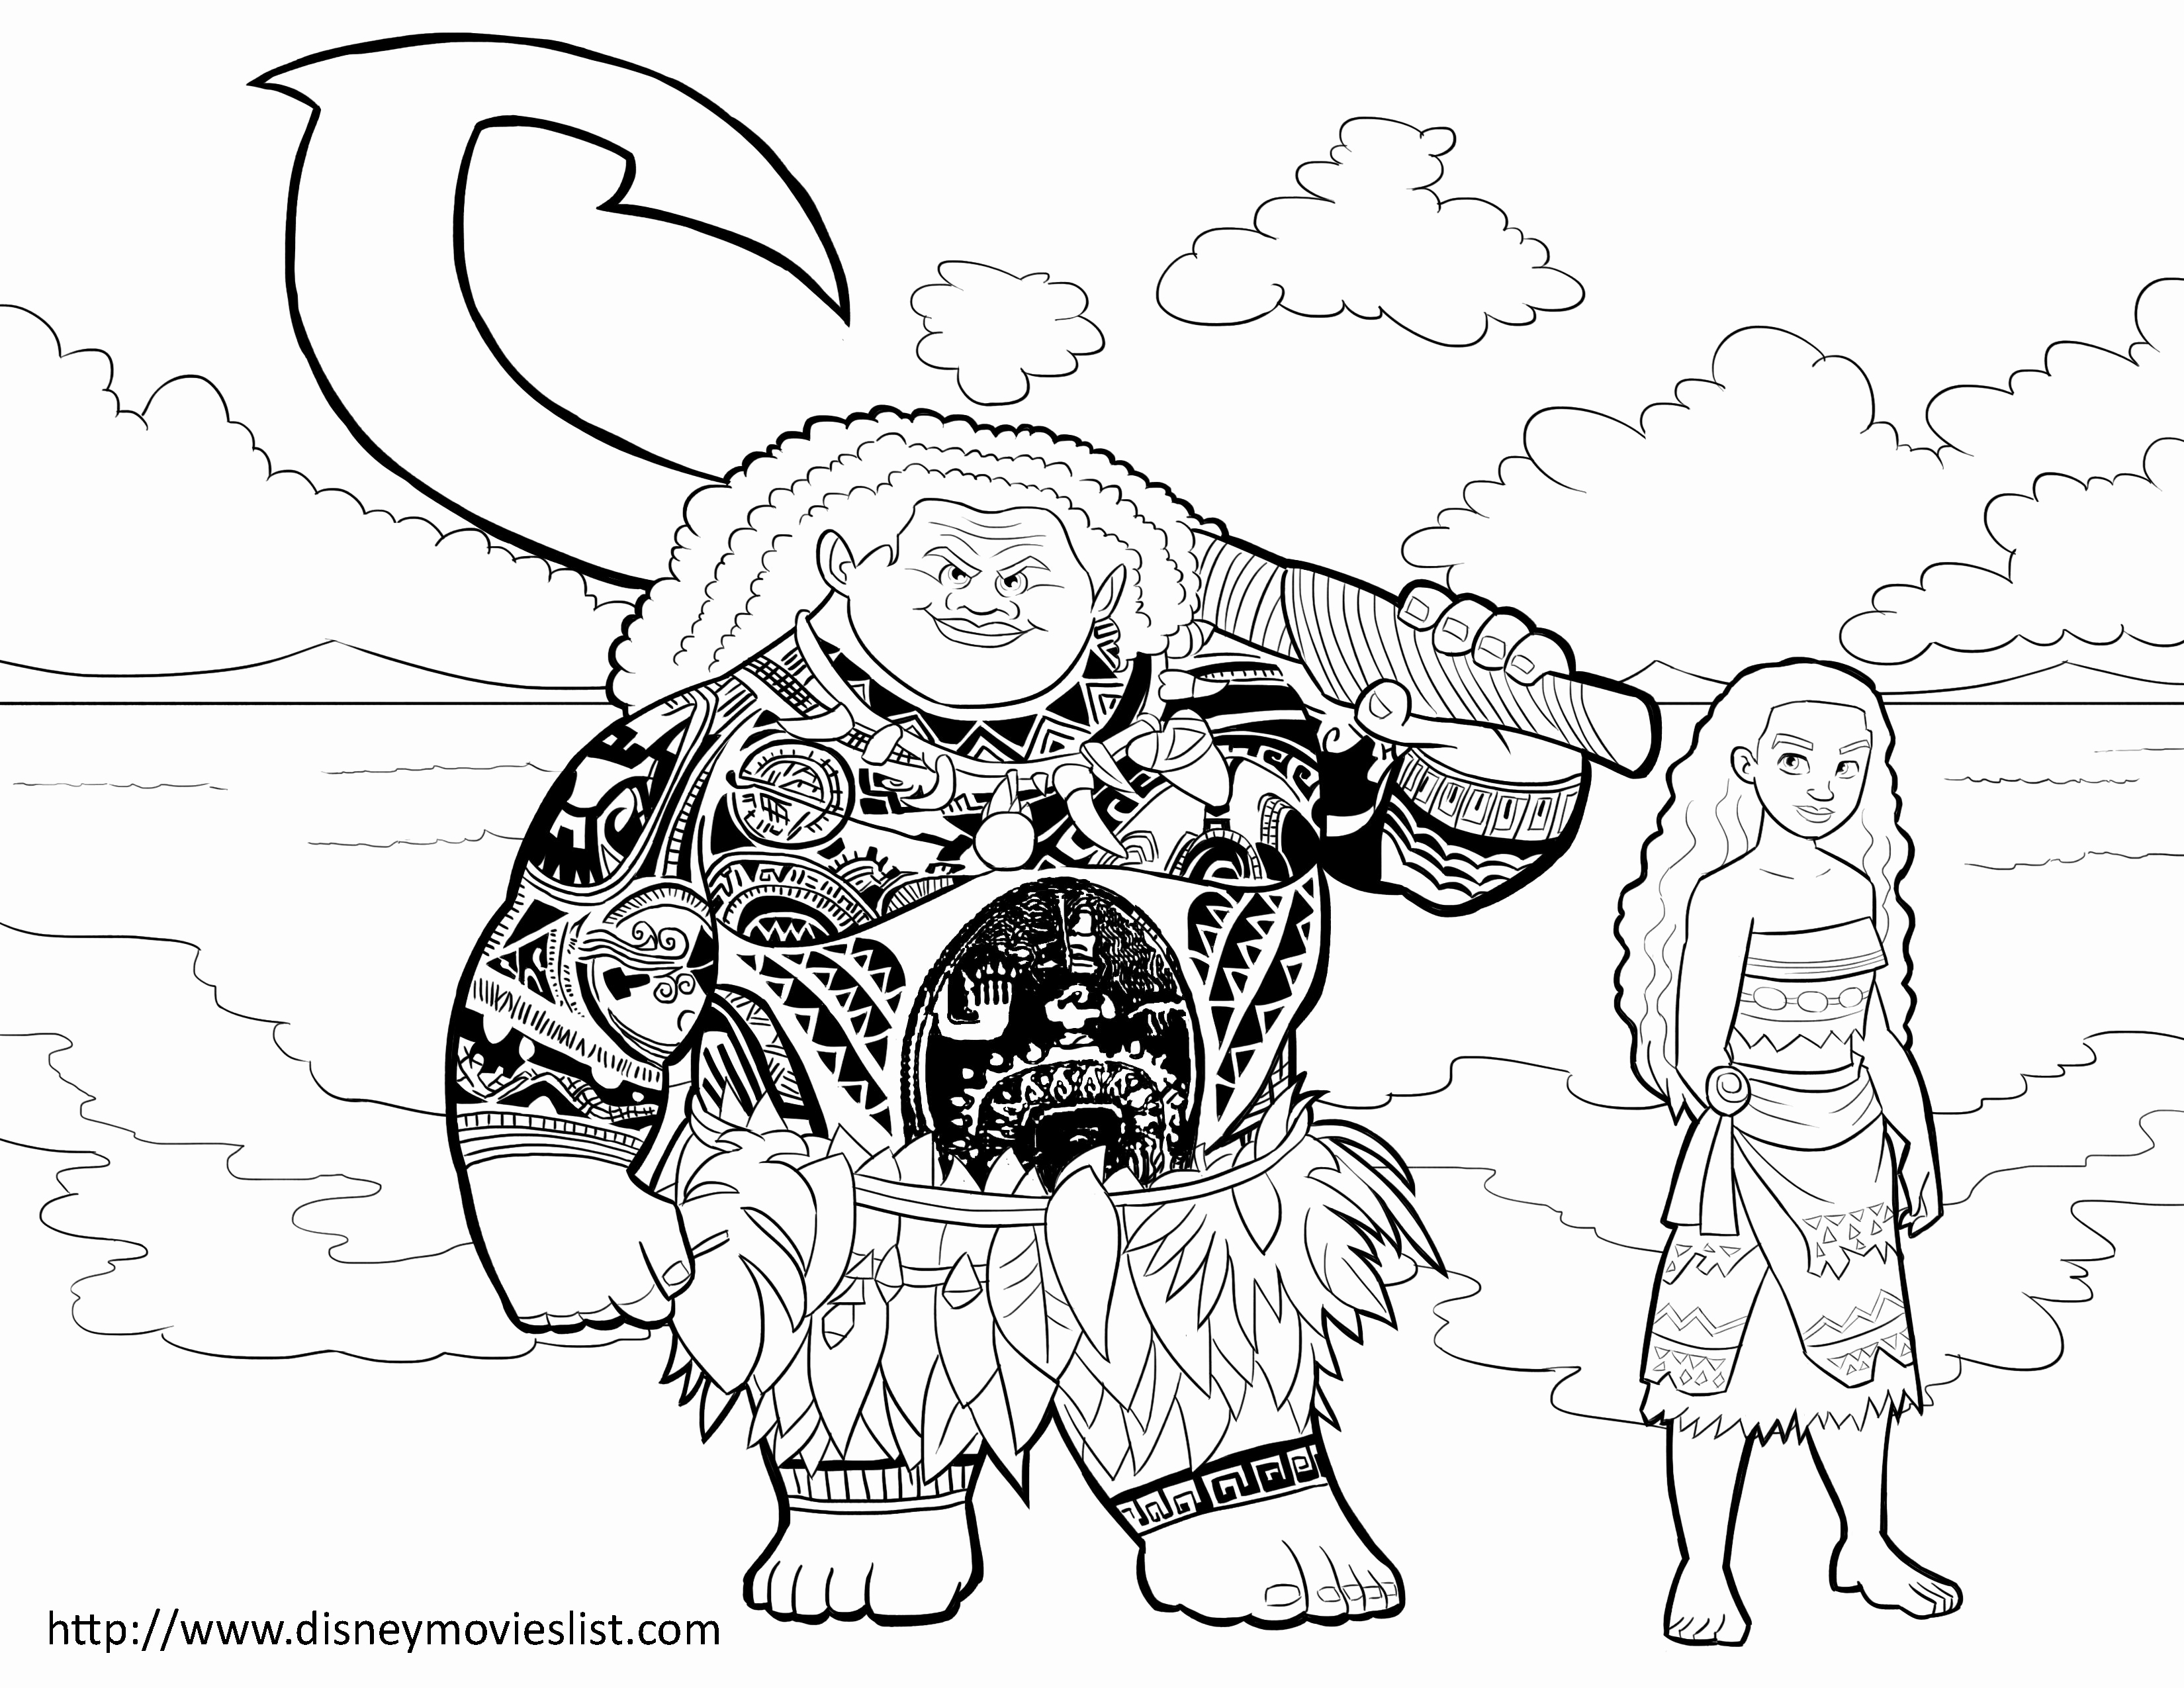 The Best Free Disney Coloring Page Images Download From